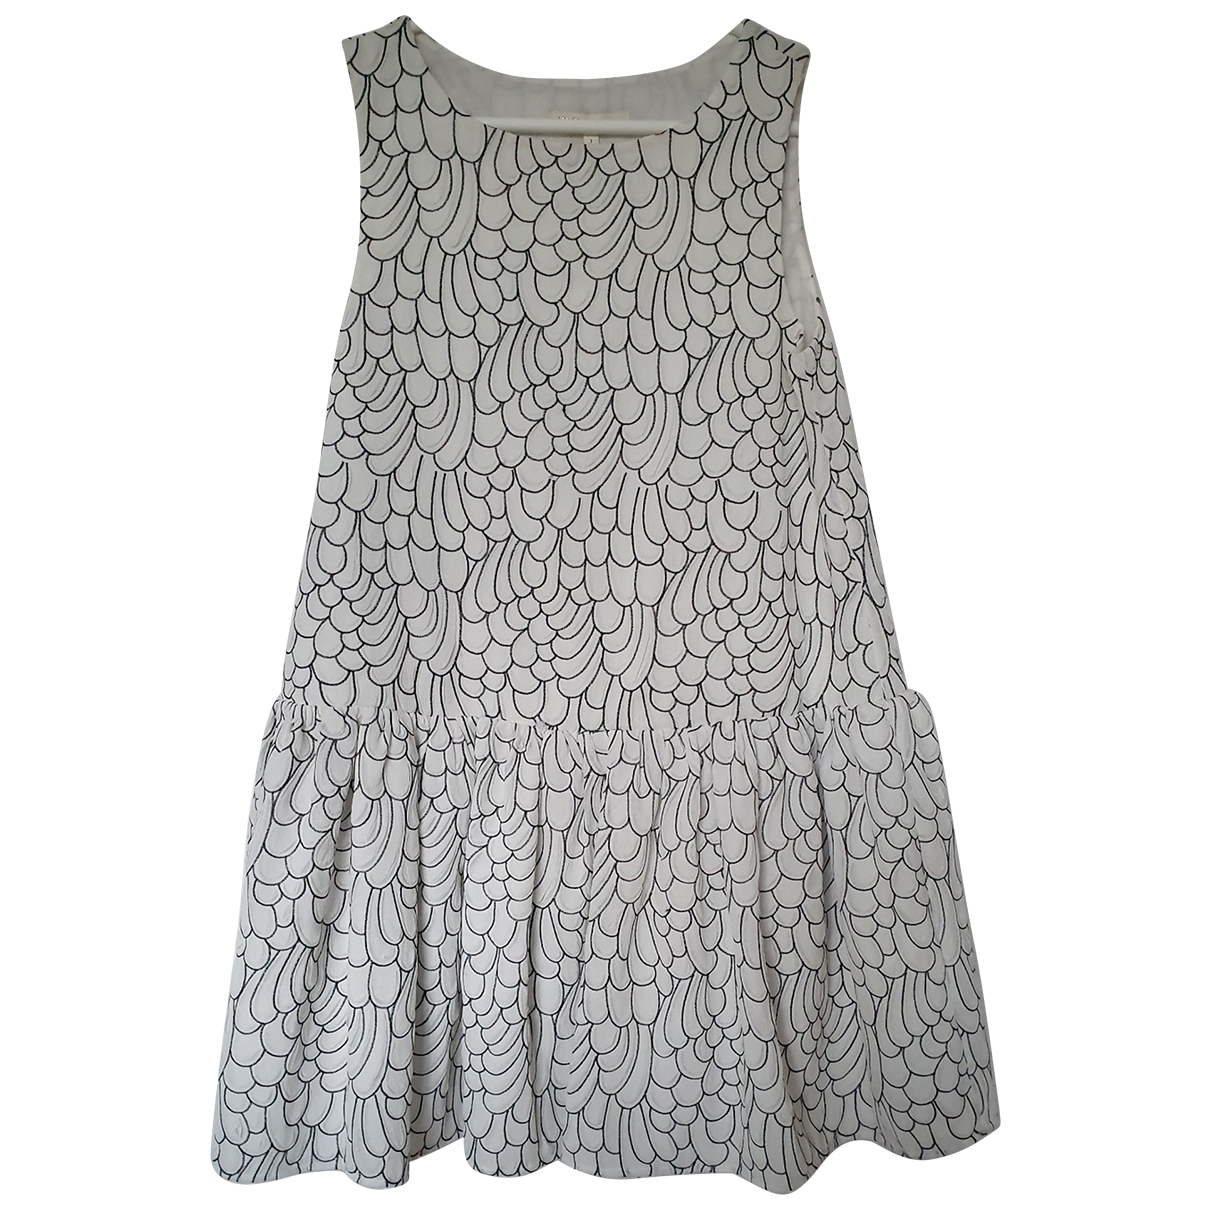 Maje \N White dress for Women 1 0-5